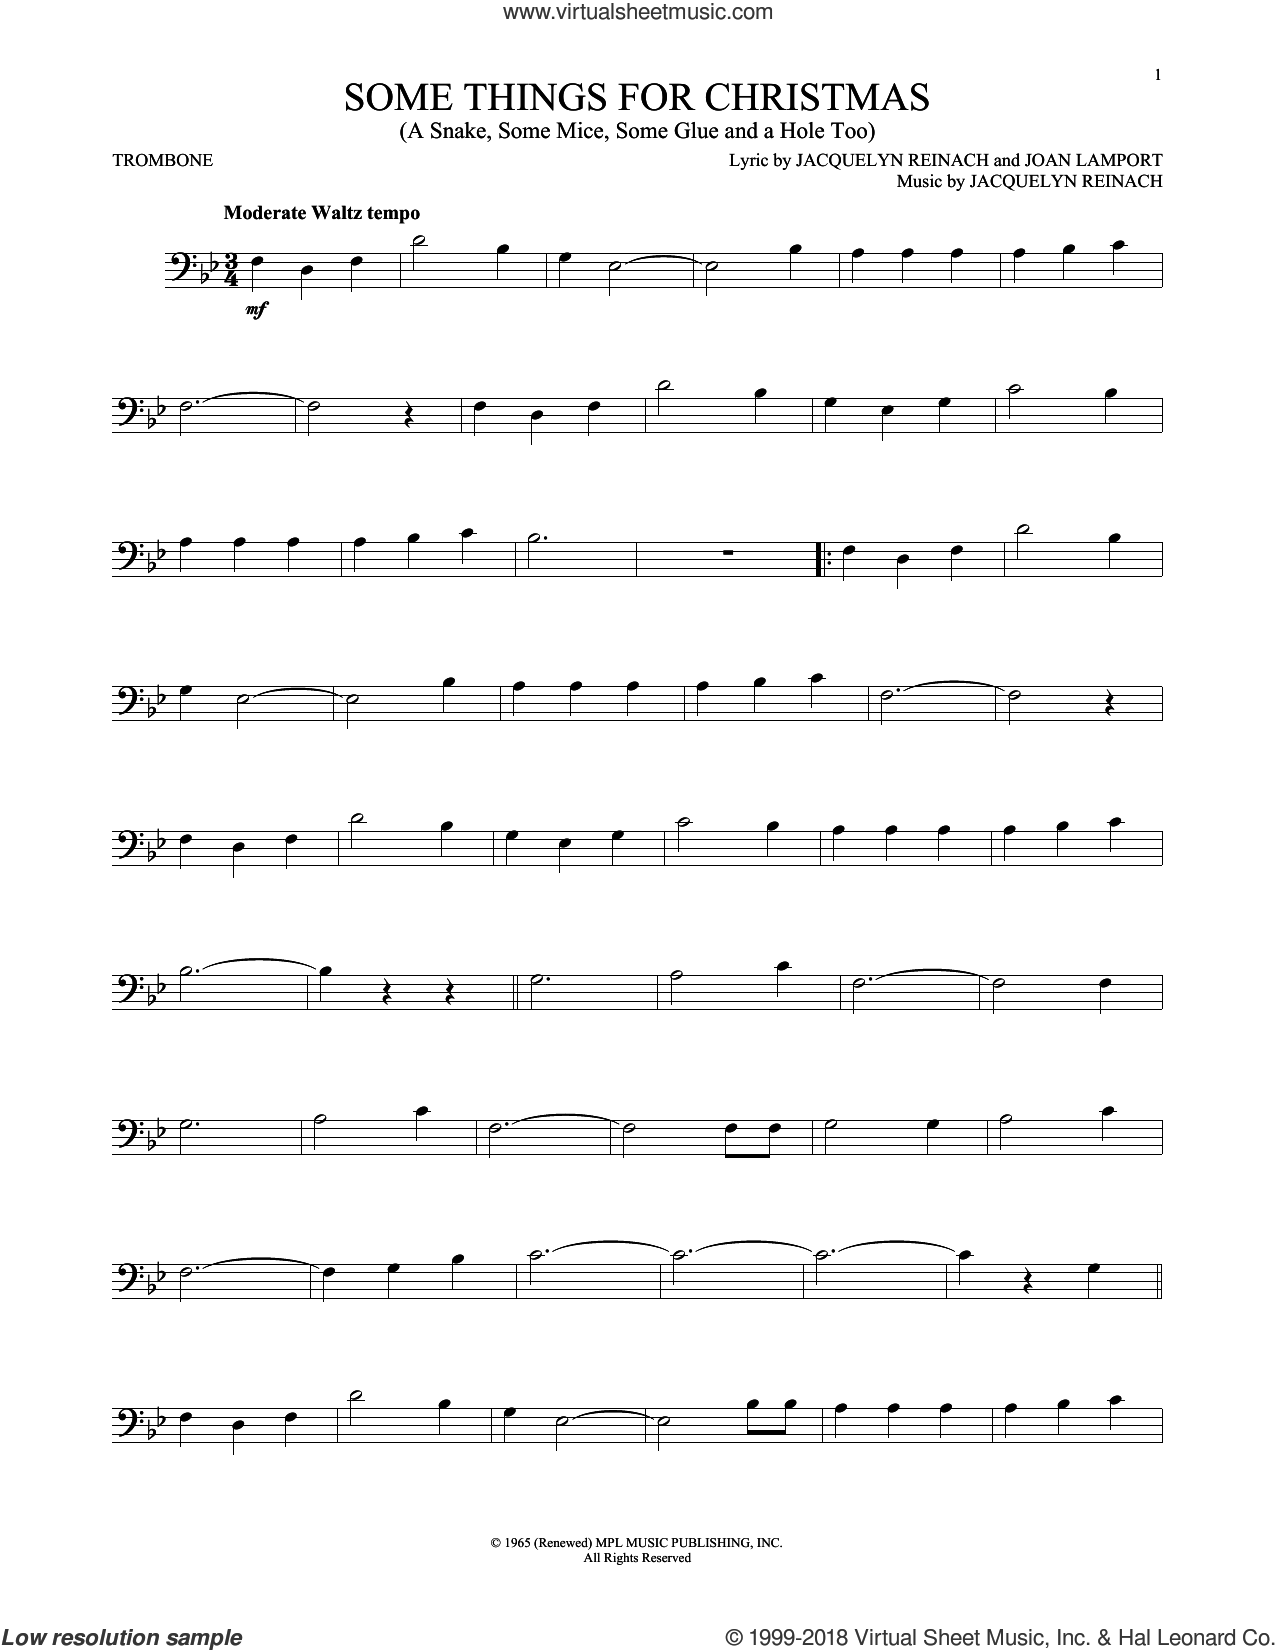 Some Things For Christmas (A Snake, Some Mice, Some Glue And A Hole Too) sheet music for trombone solo by Jacquelyn Reinach and Joan Lamport, intermediate skill level